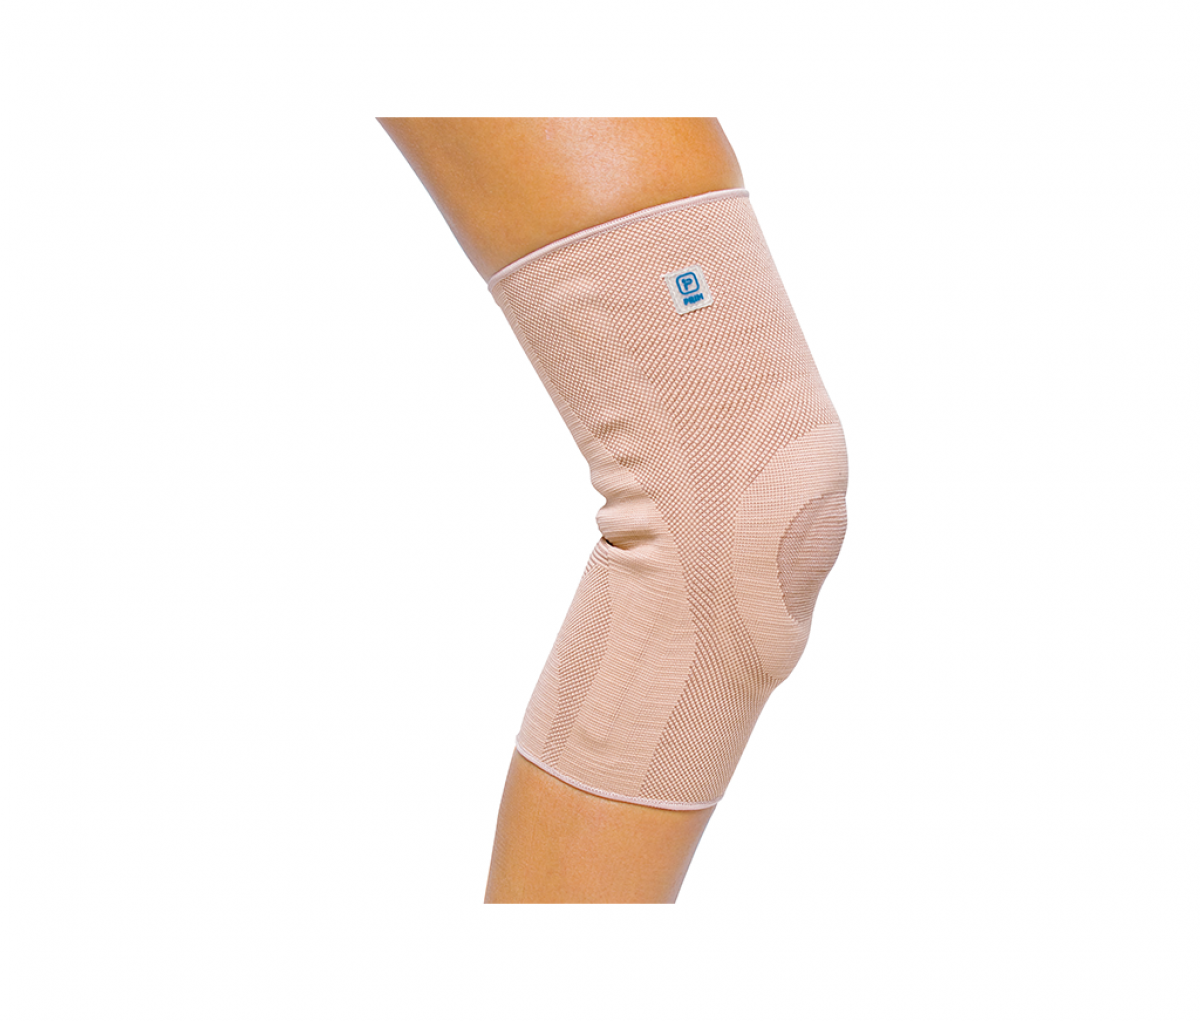 AQTIVO KNEE BRACE WITH SILICONE INSERT AND STAYS - S P701BG